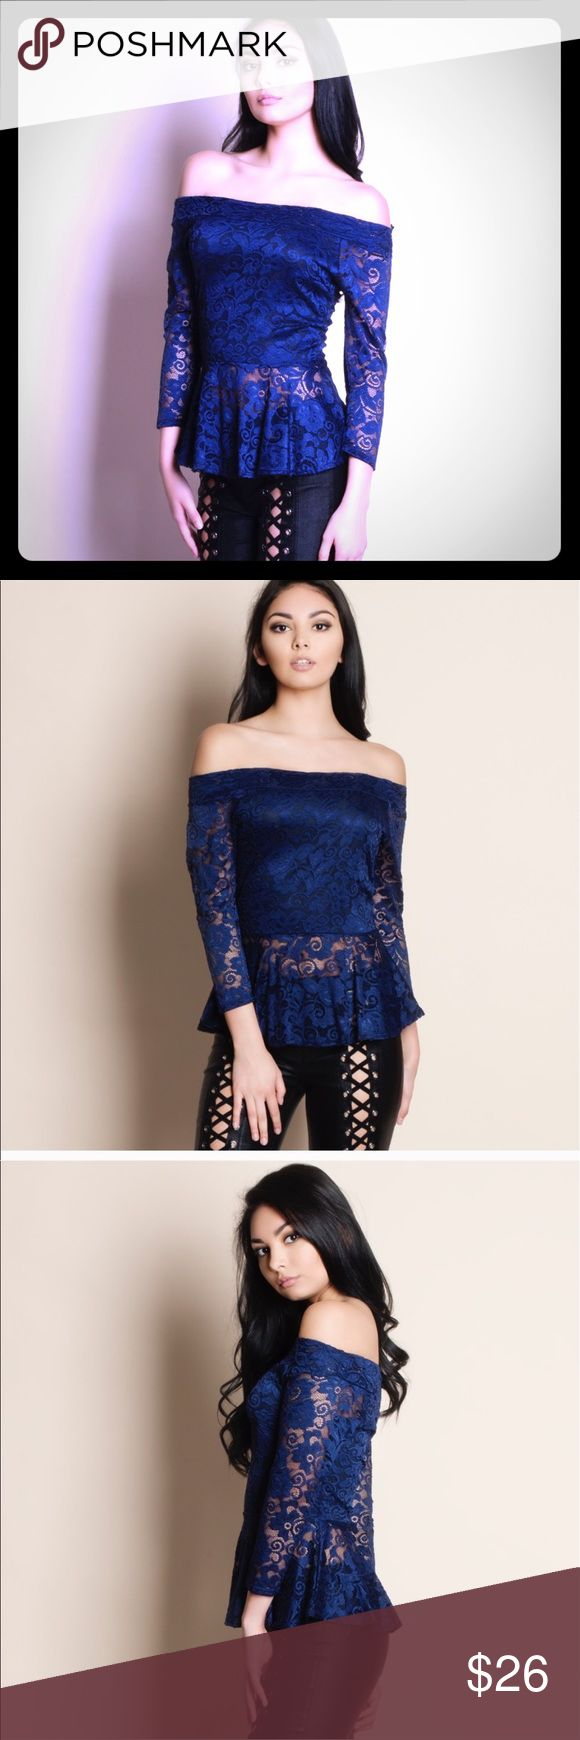 1 left !!!! Final Price This navy blue off shoulder lace top Tops